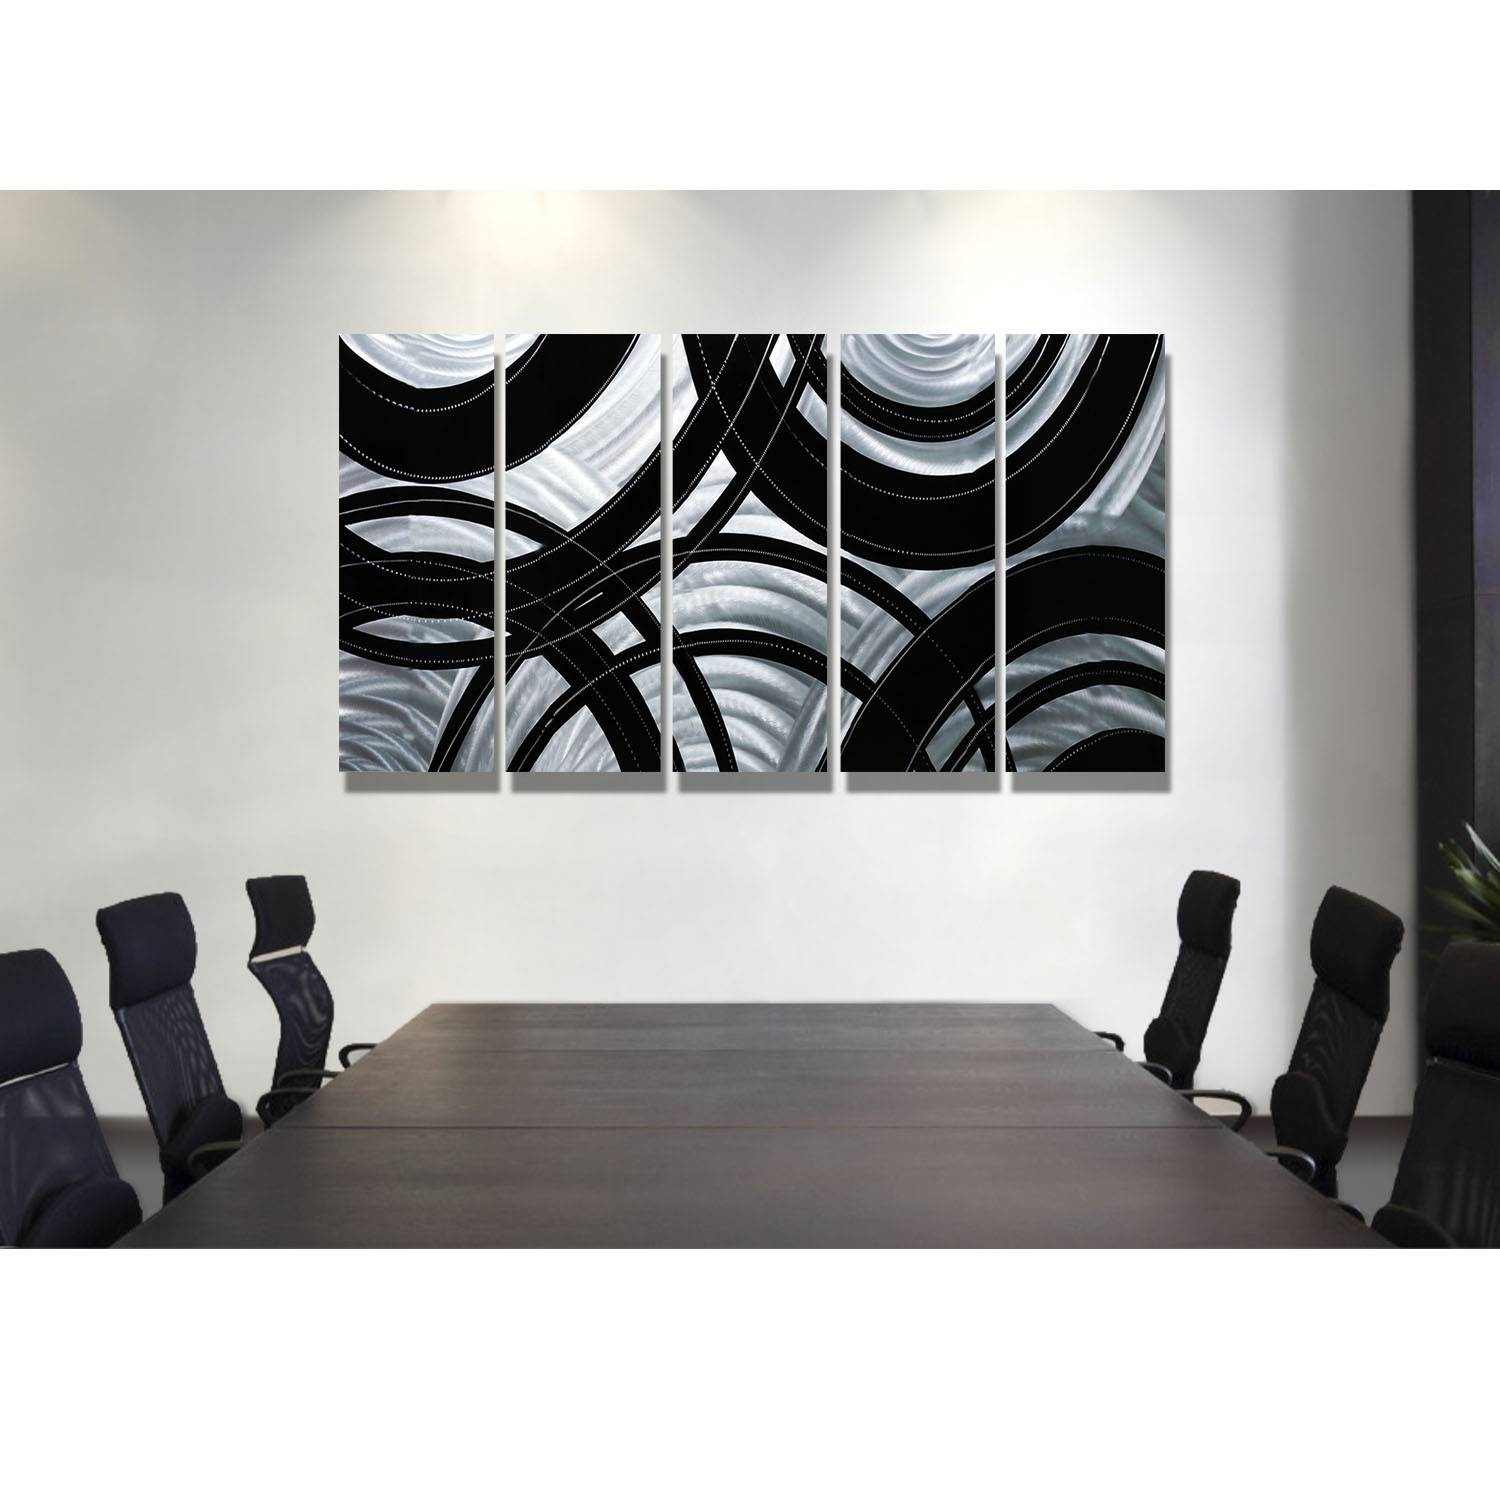 Synergy - Black And Silver Metal Wall Art - 5 Panel Wall Décor inside 2018 Black And Silver Metal Wall Art